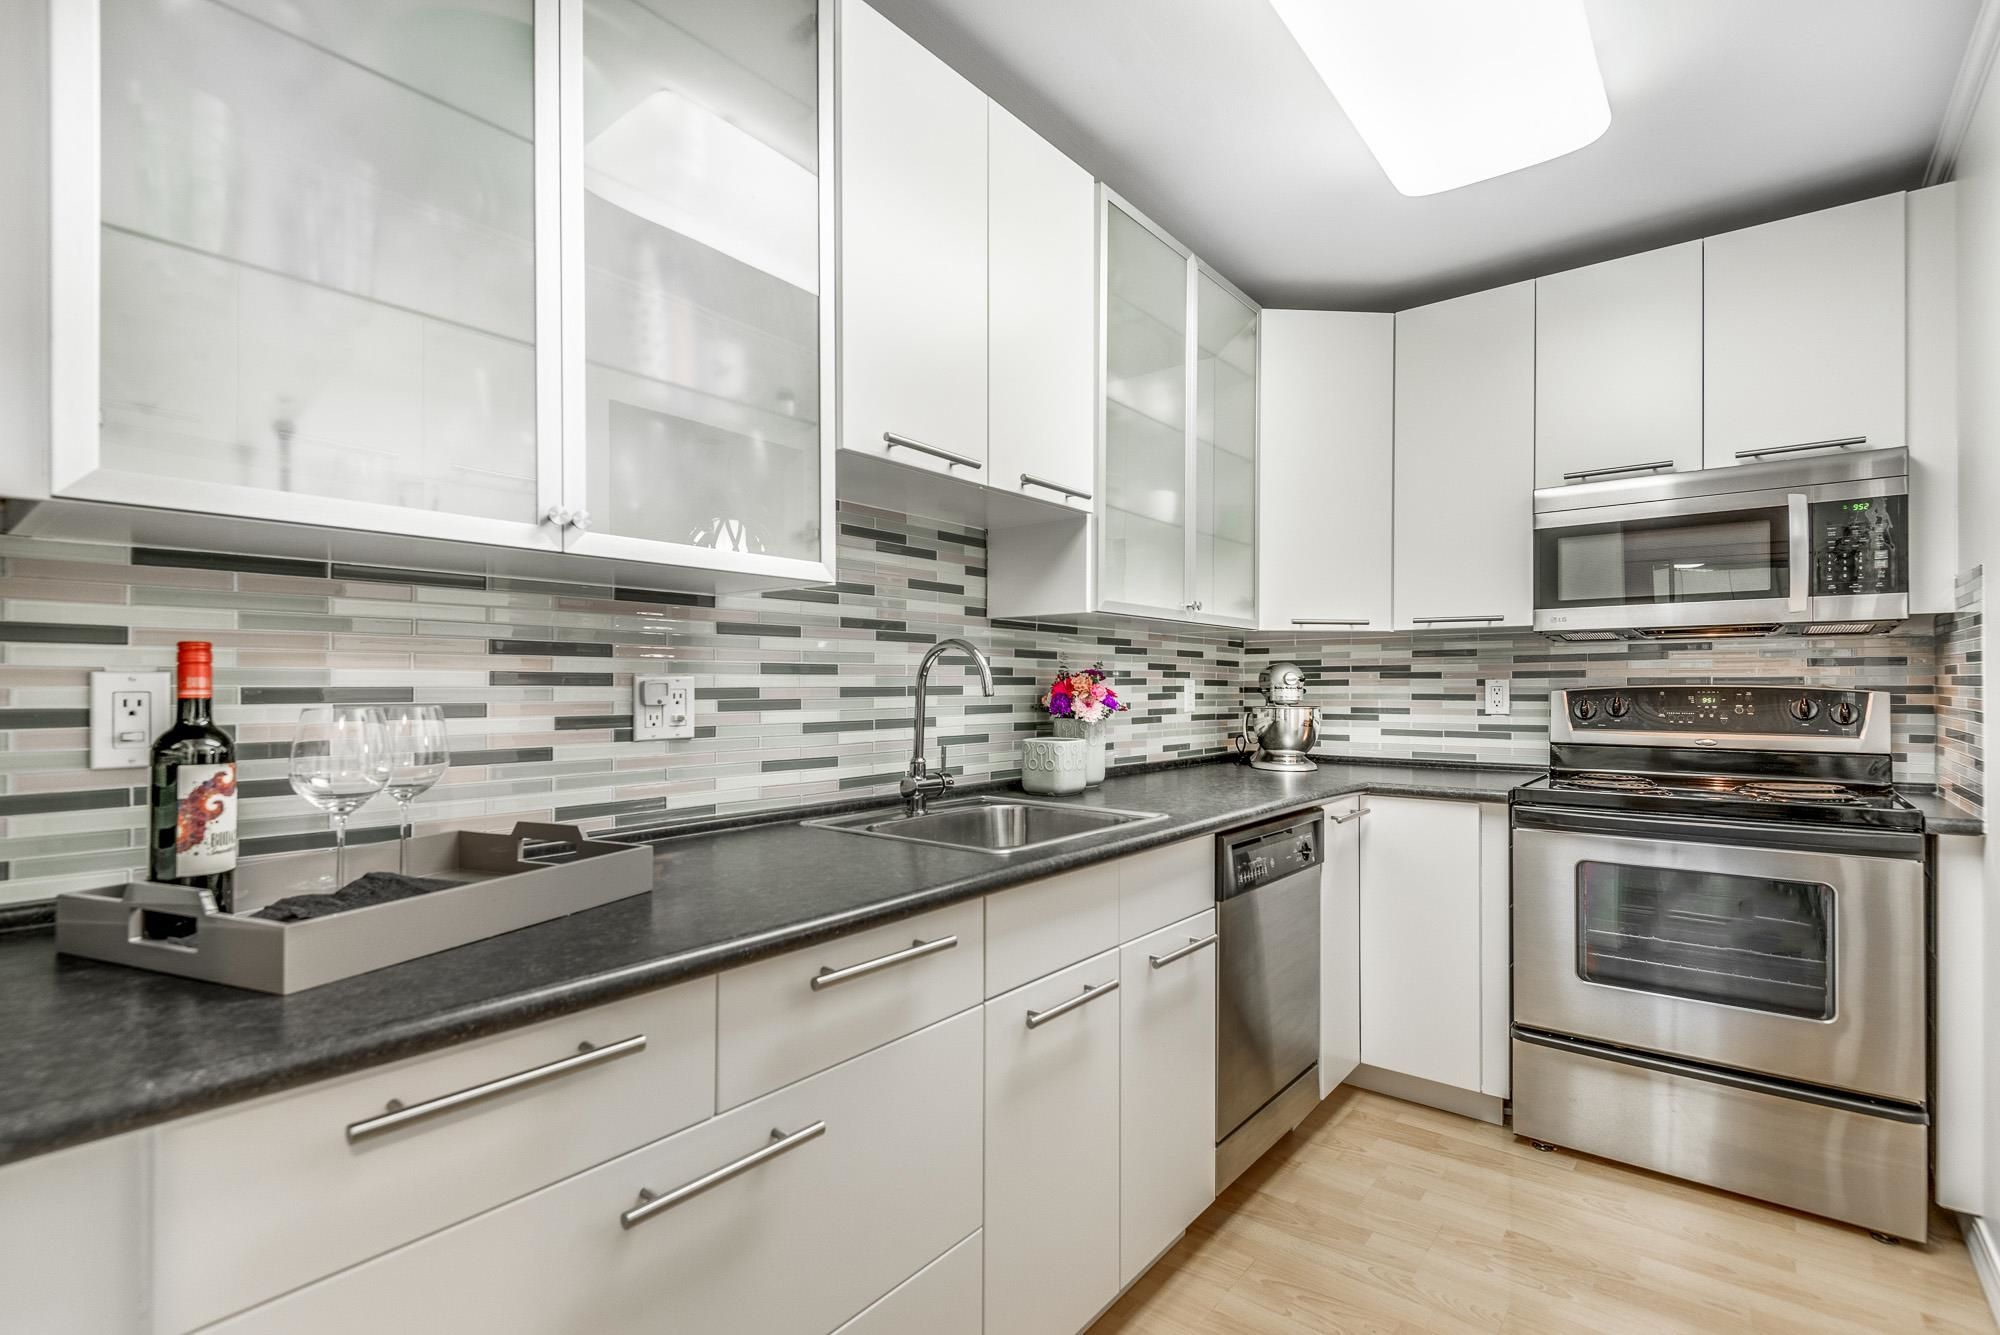 """Main Photo: 204 601 NORTH Road in Coquitlam: Coquitlam West Condo for sale in """"WOLVERTON"""" : MLS®# R2616957"""